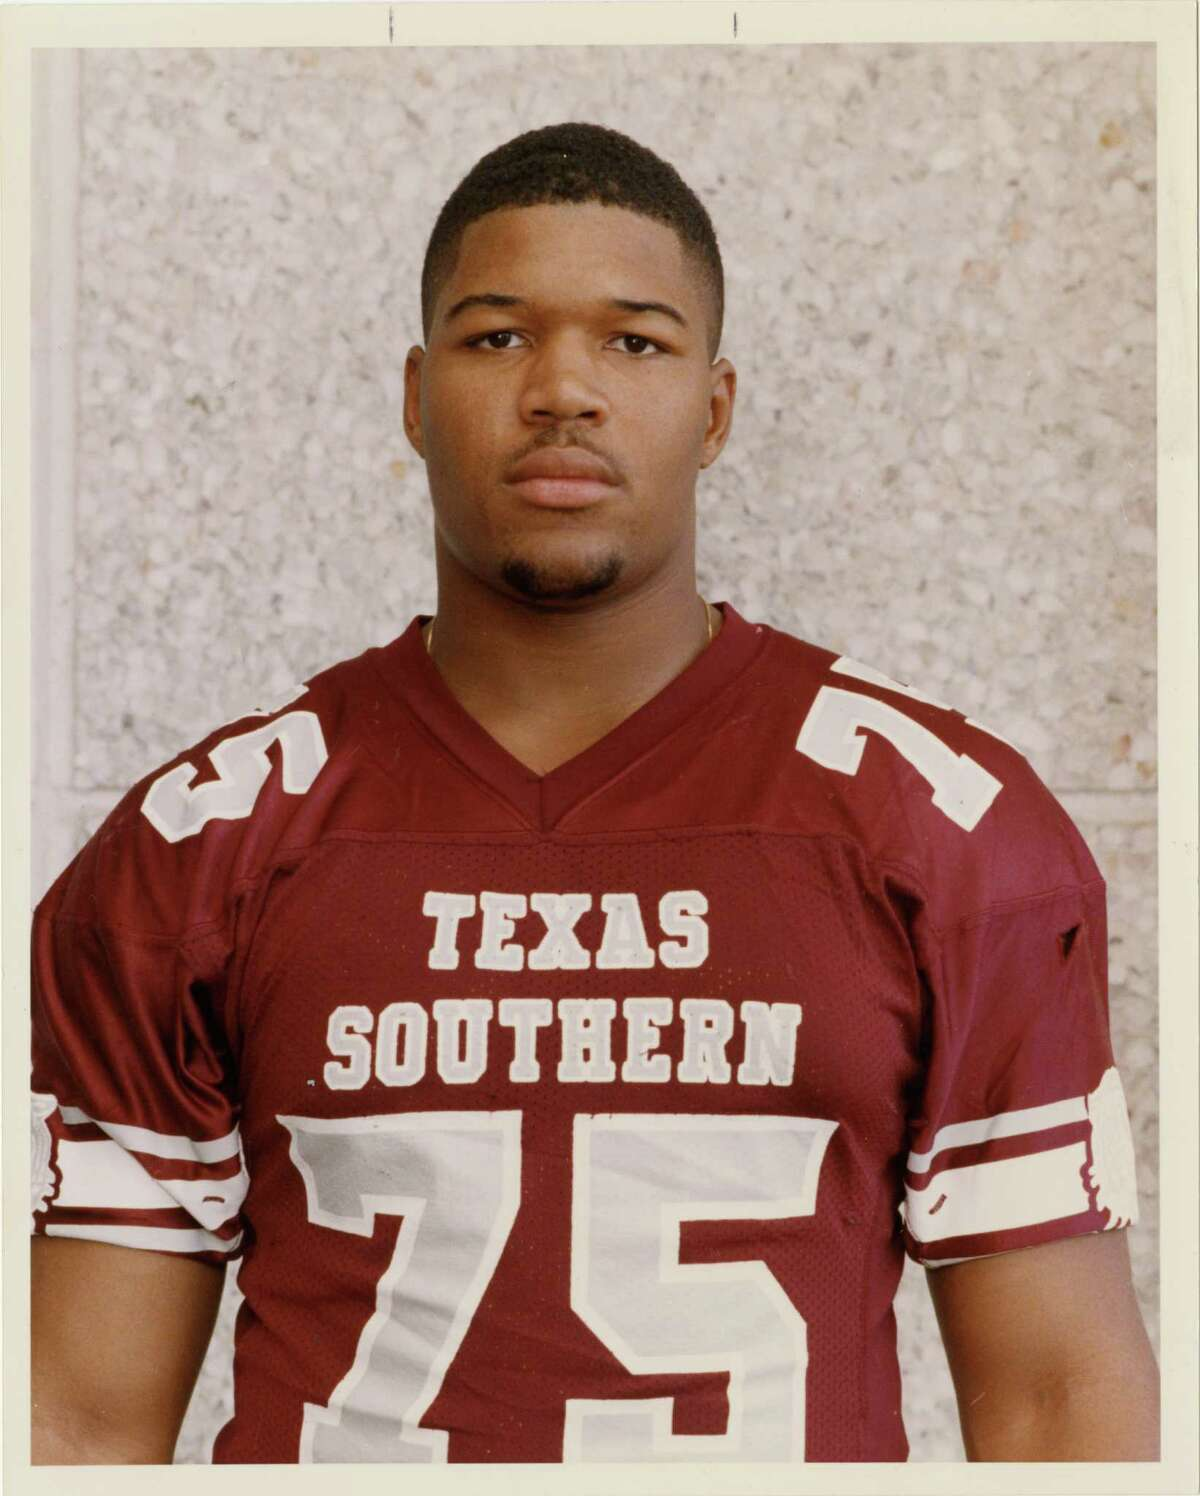 The youngest of six children, Strahan spent a good portion of his childhood in Mannheim, Germany, where his father, Gene Strahan, an Army major, settled with his family when Strahan was 9-years-old, according to Biography.com. Strahan returned to Texas for his senior year at Houston's Westbury High School. He excelled at football, earning a scholarship to play at Texas Southern University.